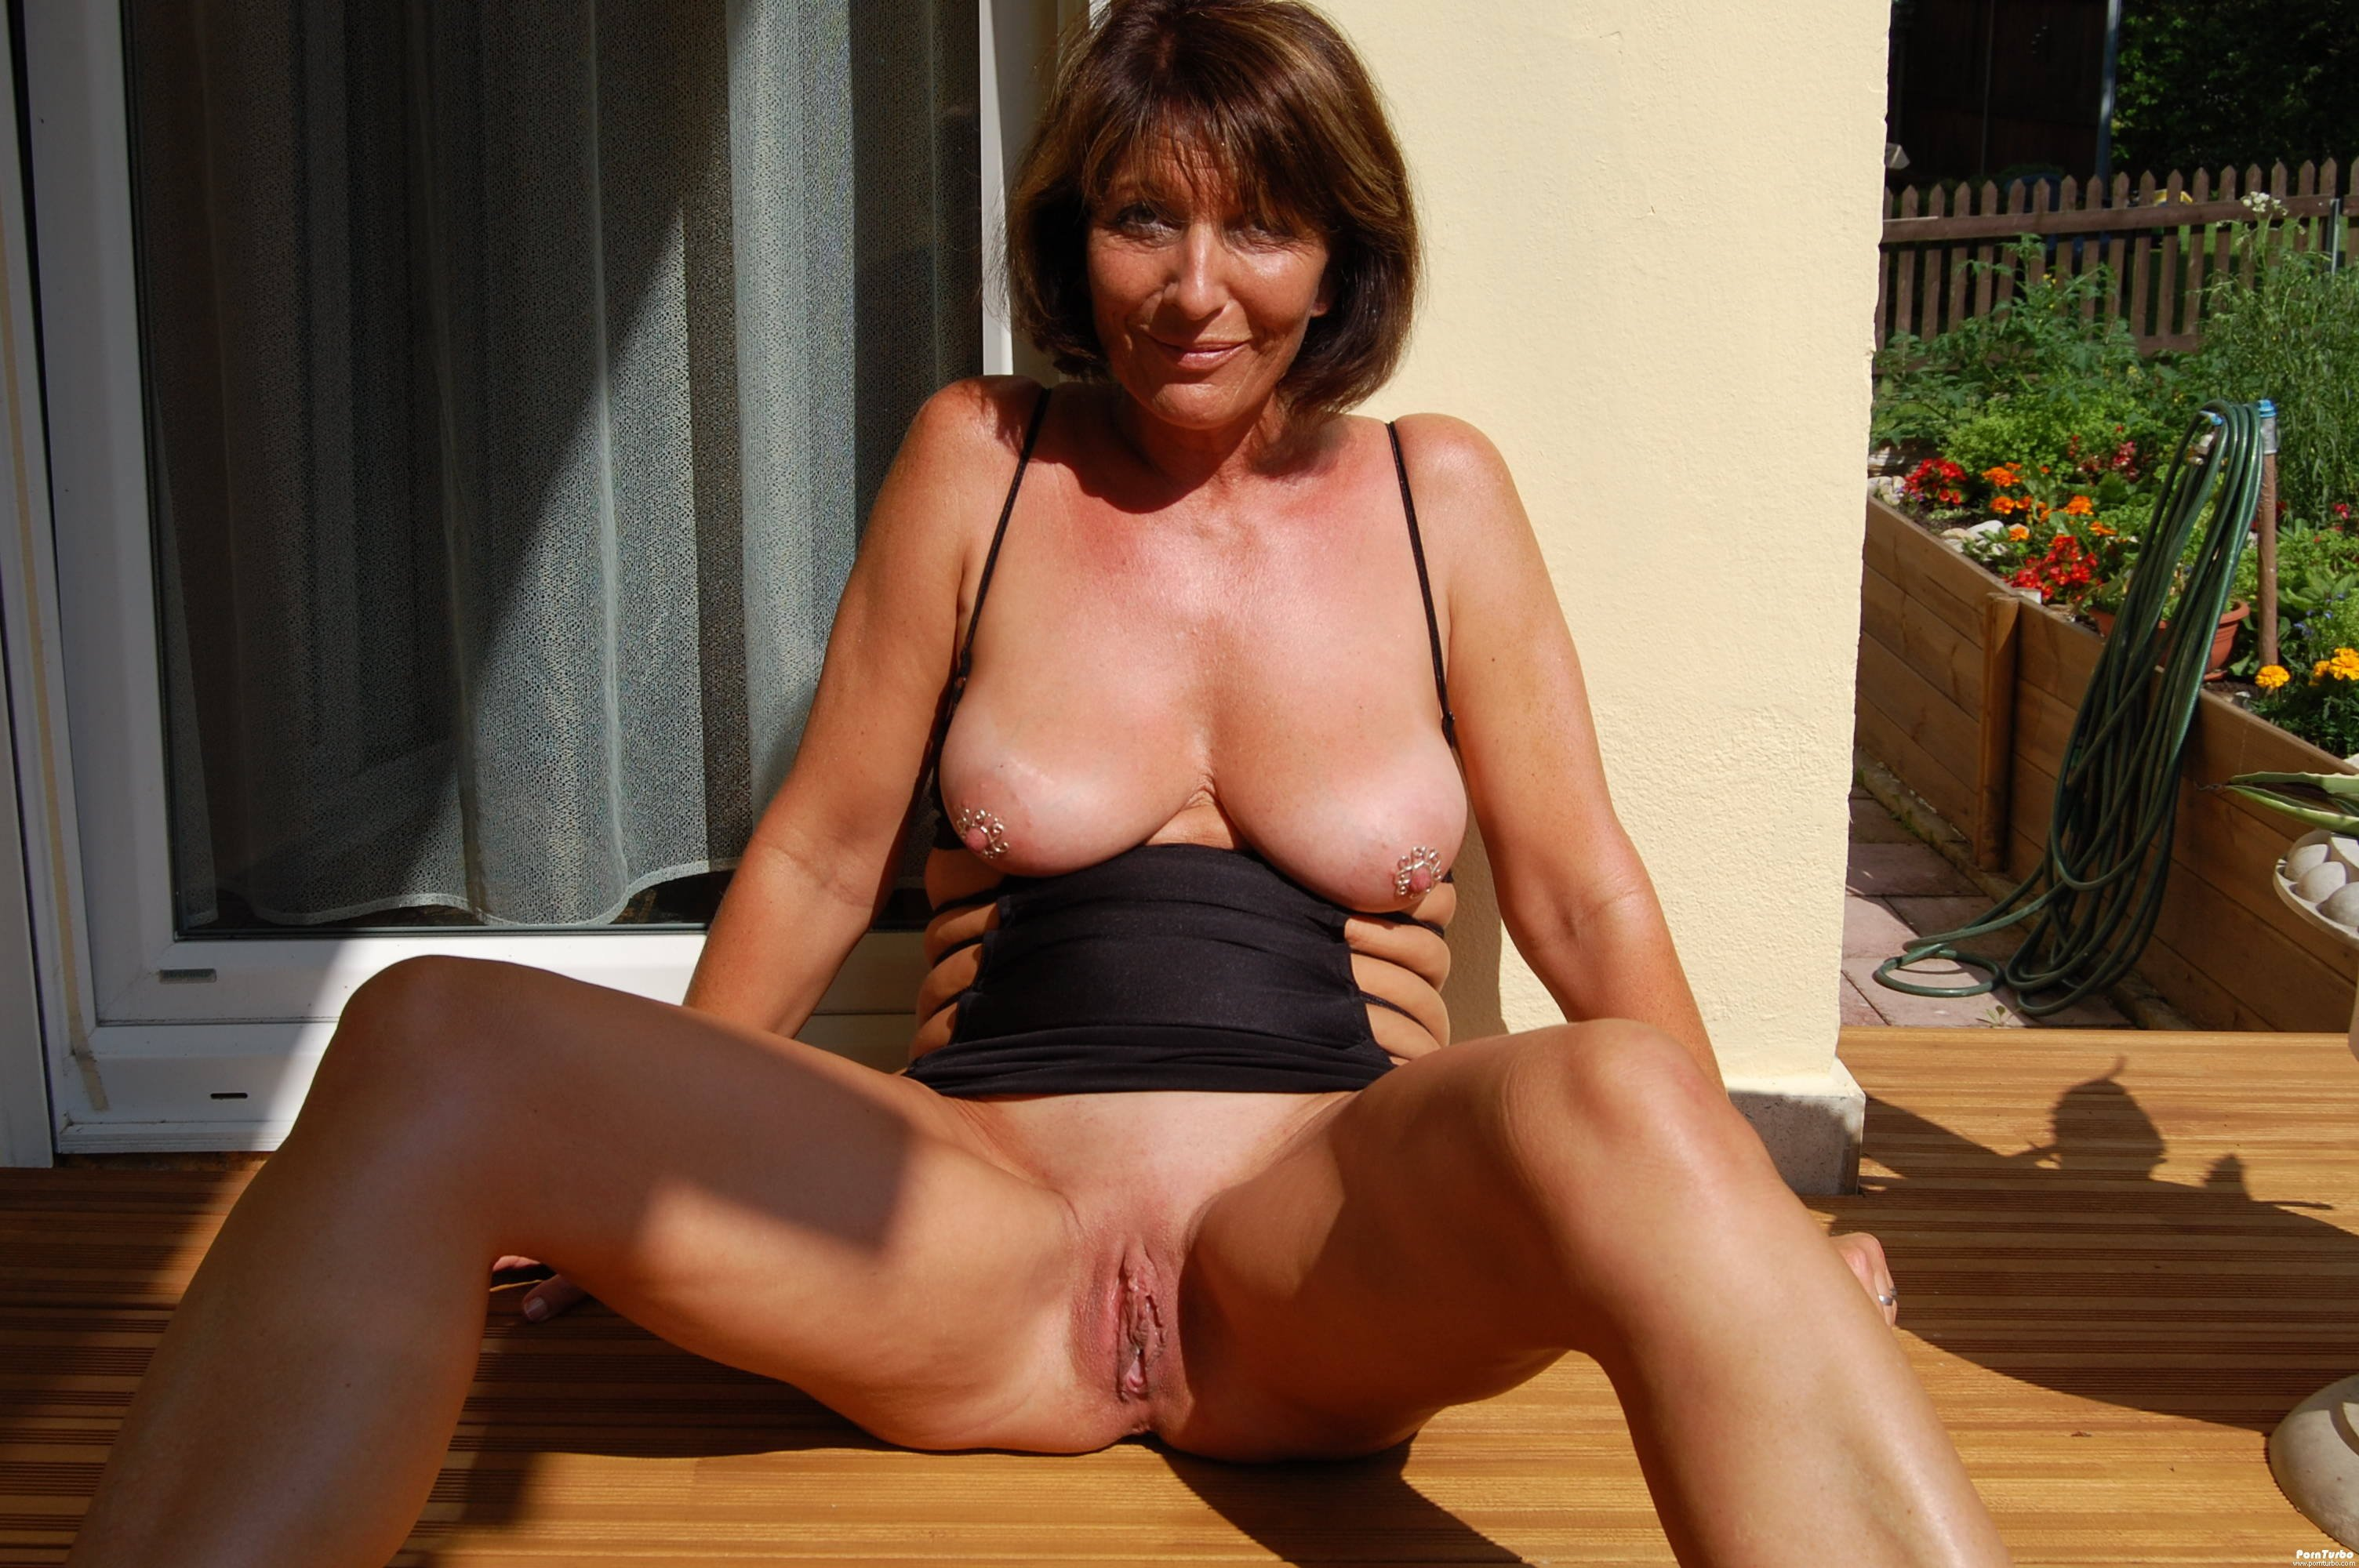 Sexy Mature Nudes Pics, Nude Mature Women Pictures, Sexy Naked Women Pictures